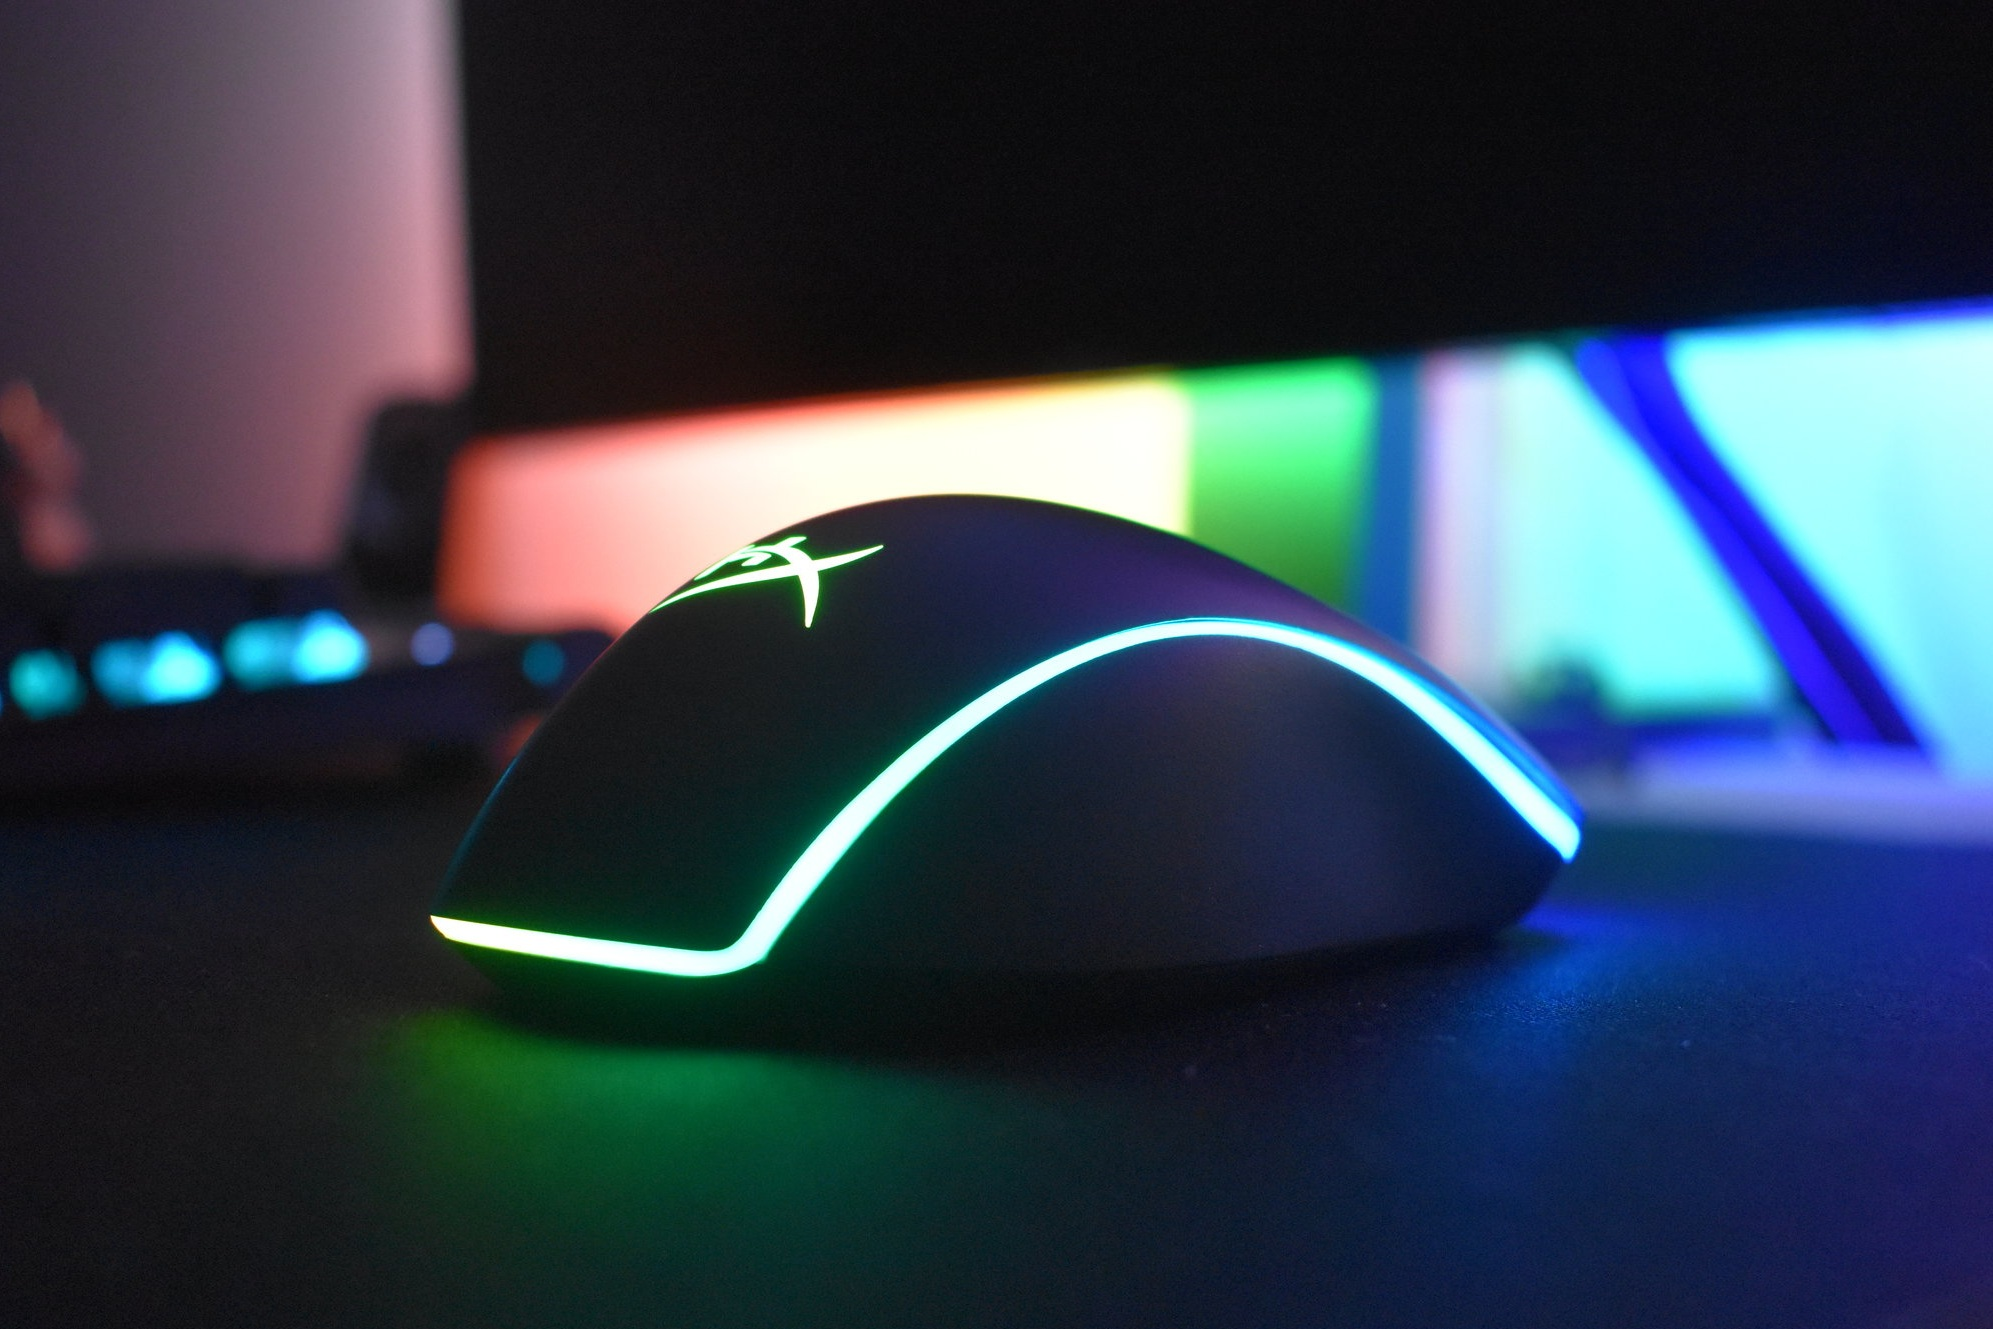 HyperX Pulsefire Surge RGB Gaming Mouse with Lights On